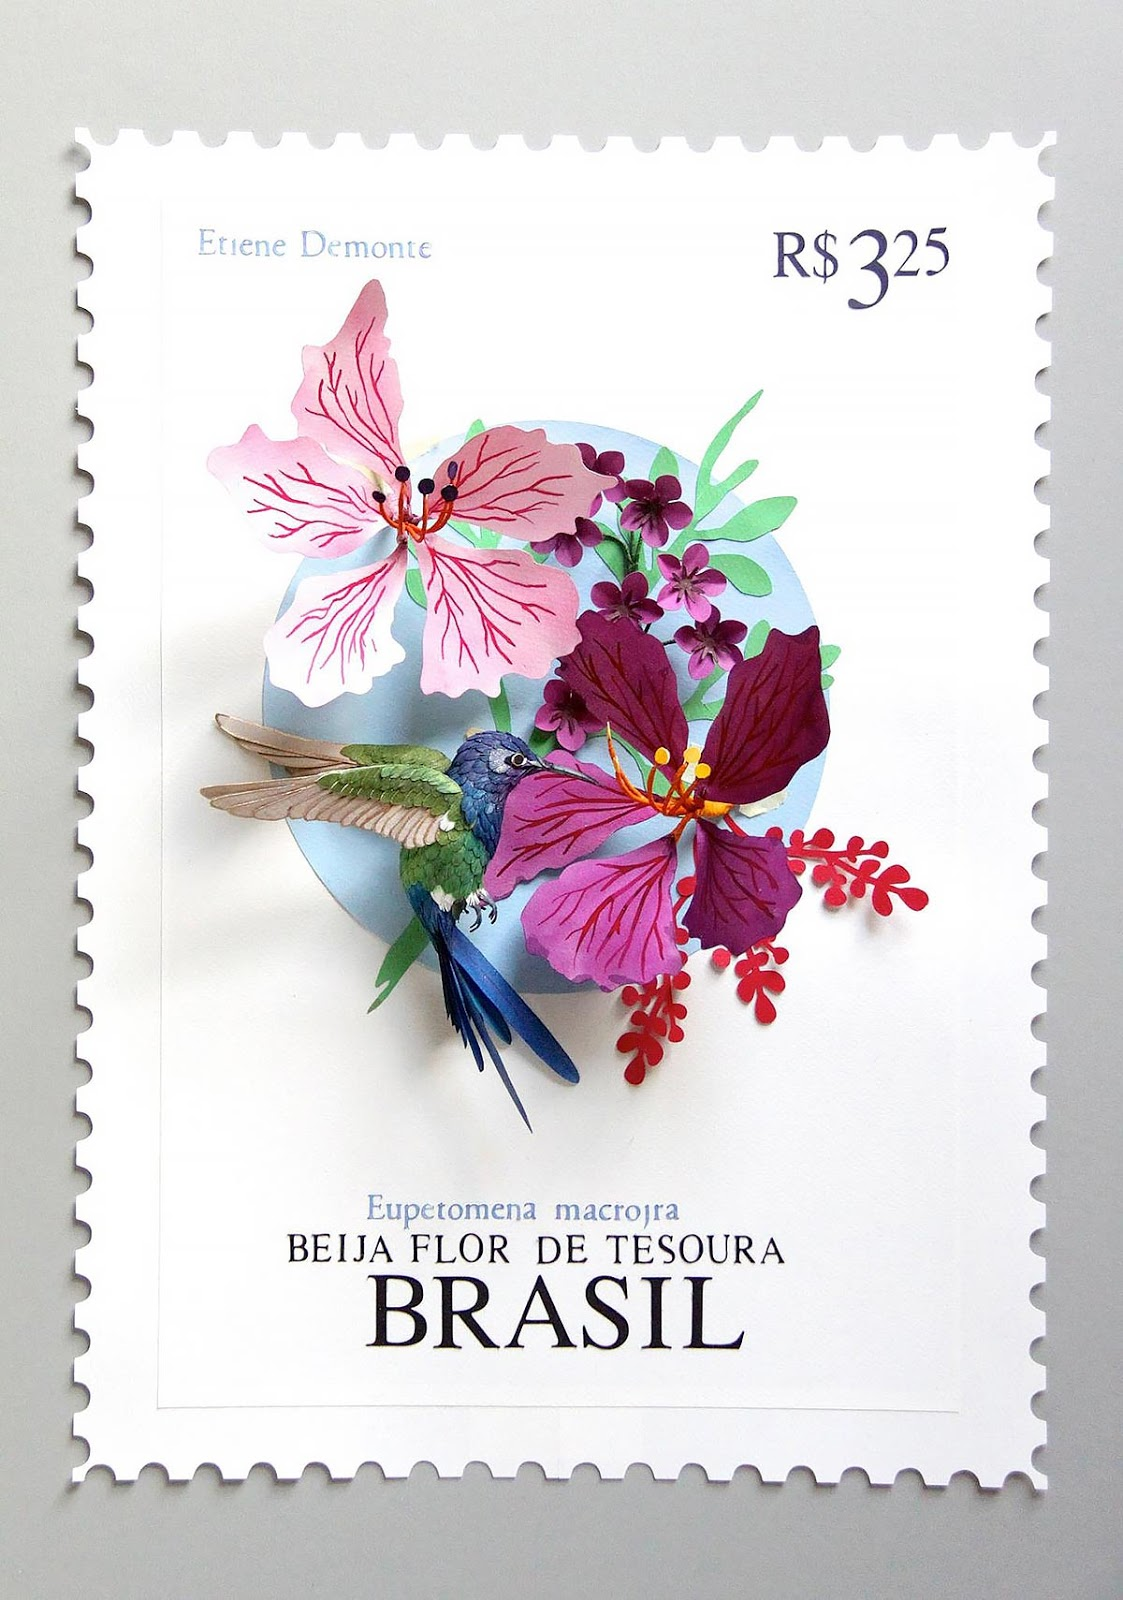 paper sculpture, bright colors, birds, stamps, art